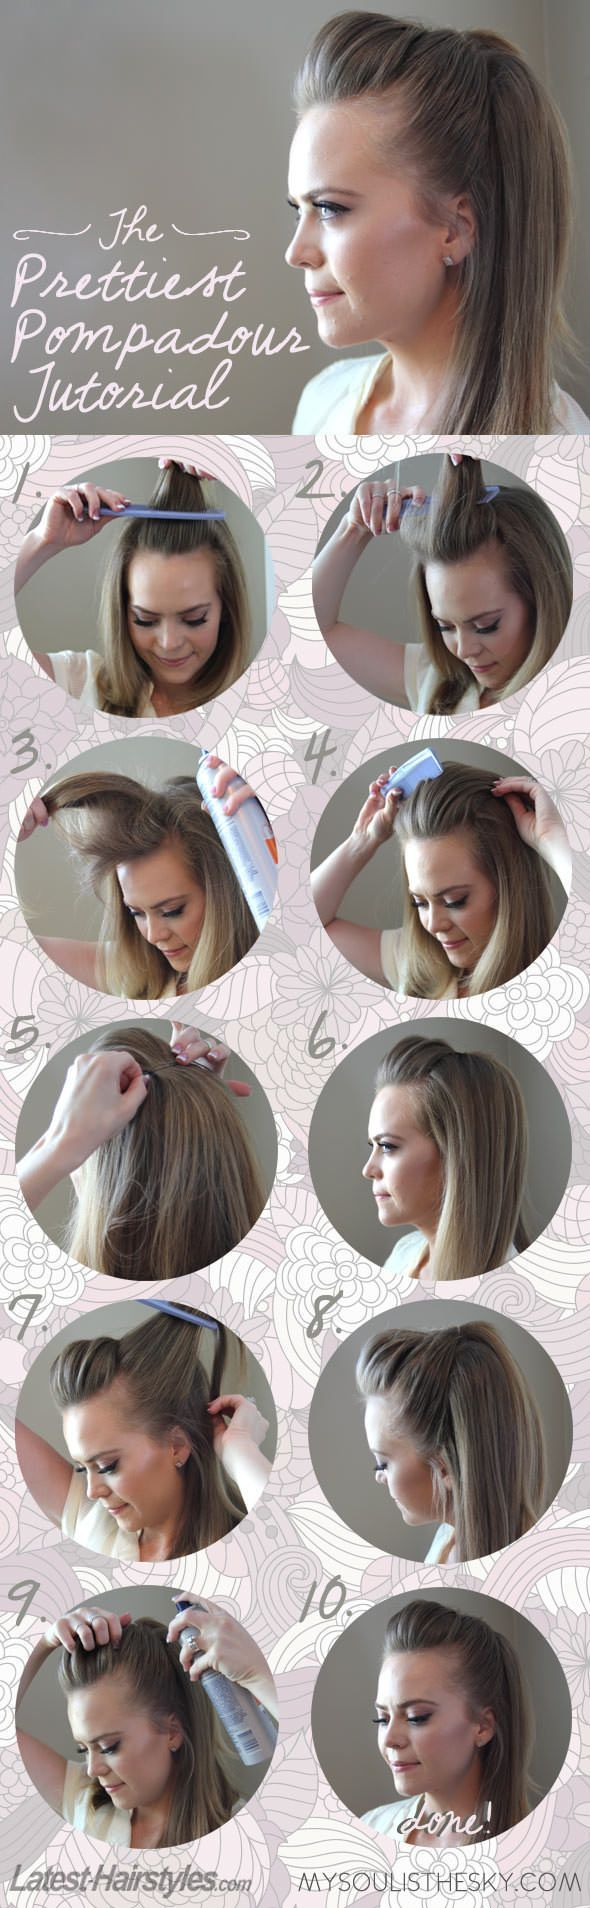 1. Take the front part of your hair – your fridge 2. Start teasing it with a comb 3. Spray your hair 4. Carefully comb the hair backwards. Make sure it has enough volume on the top 5. Secure the hair with a bobby pin or two. 6. HThis is how it should look like so far 7. Time to take care of the sides. Take a small section of hair from your left side and secure it with a pin together with the fringe. 8. Repeat this with the right side and spray with a hair spray. 9. Voila Pompadour style to…